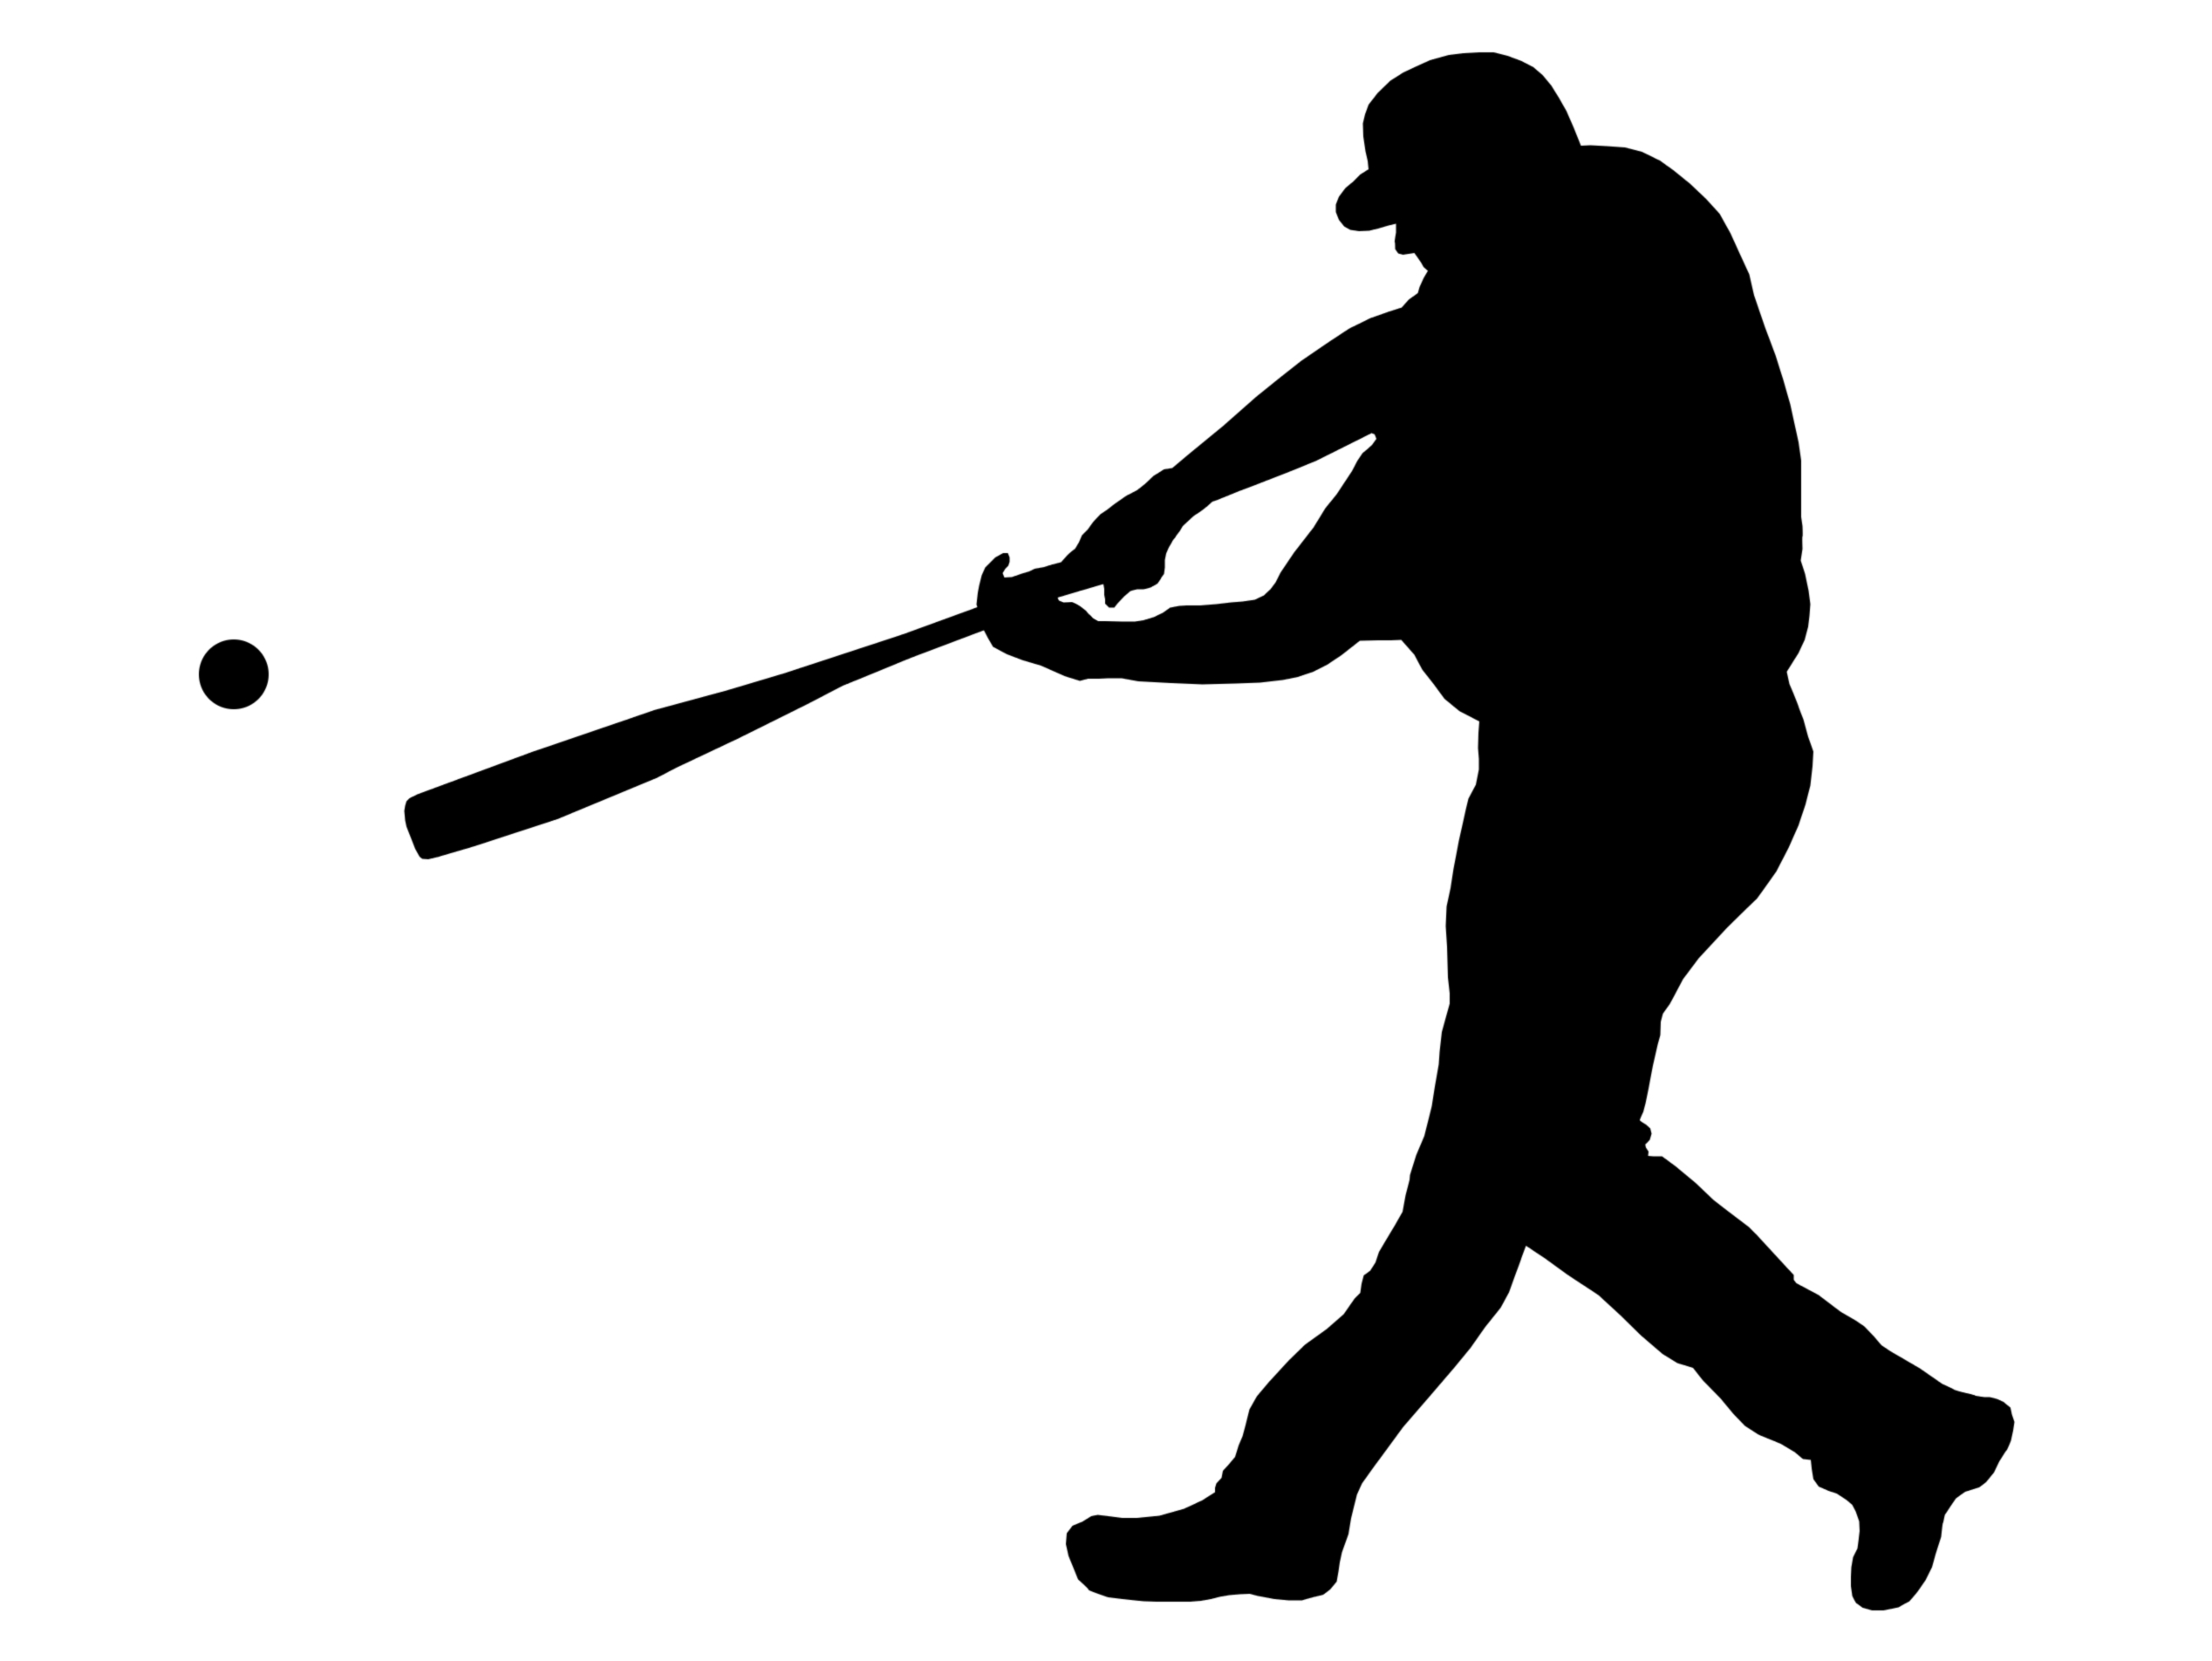 softball silhouette clip art at getdrawings com free for personal rh getdrawings com baseball clipart transparent background baseball clipart transparent